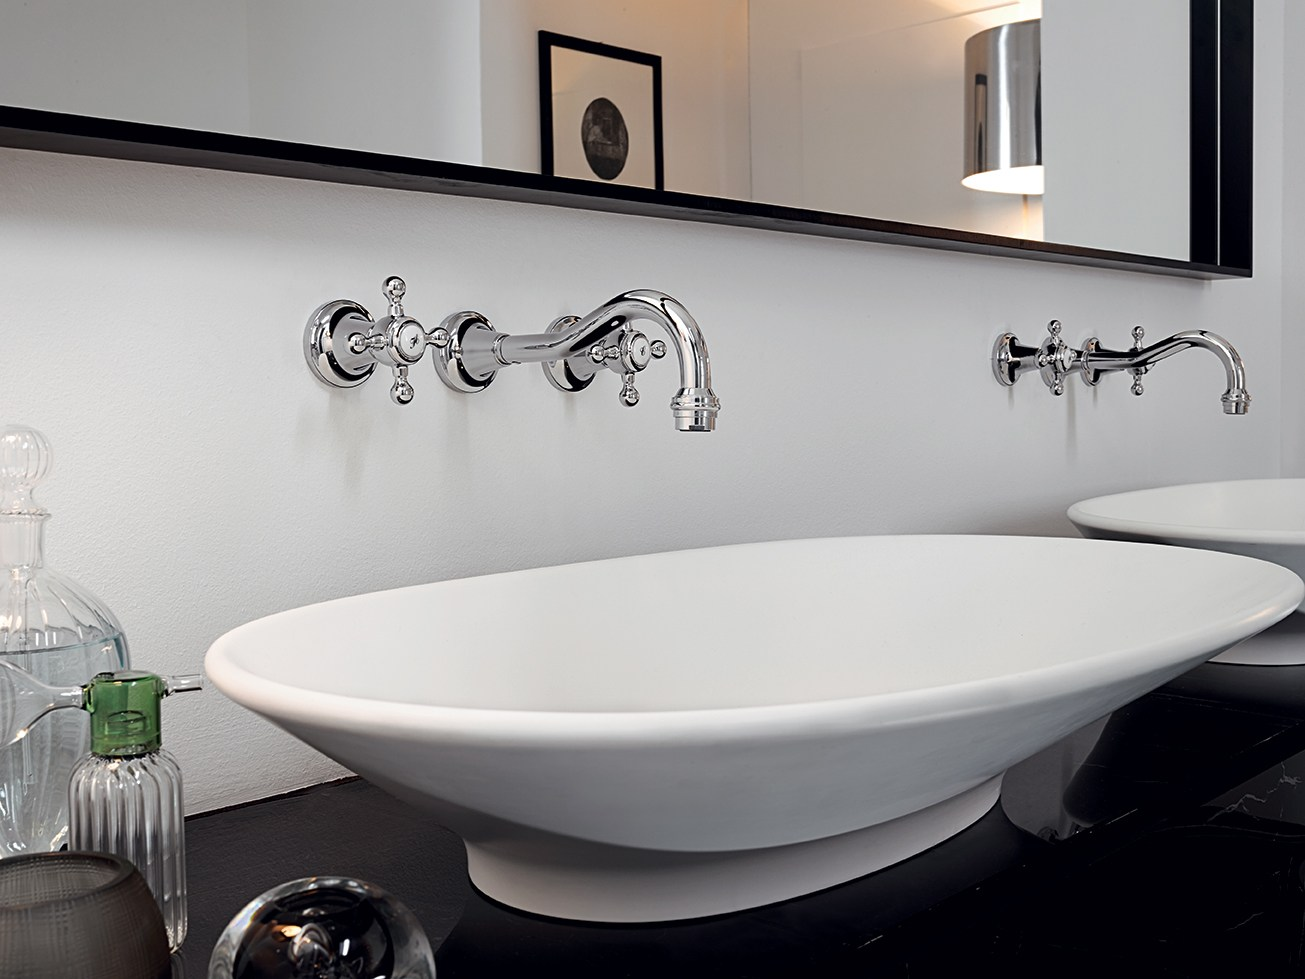 Agor robinet pour lavabo mural by zucchetti design - Robinet lavabo mural ...